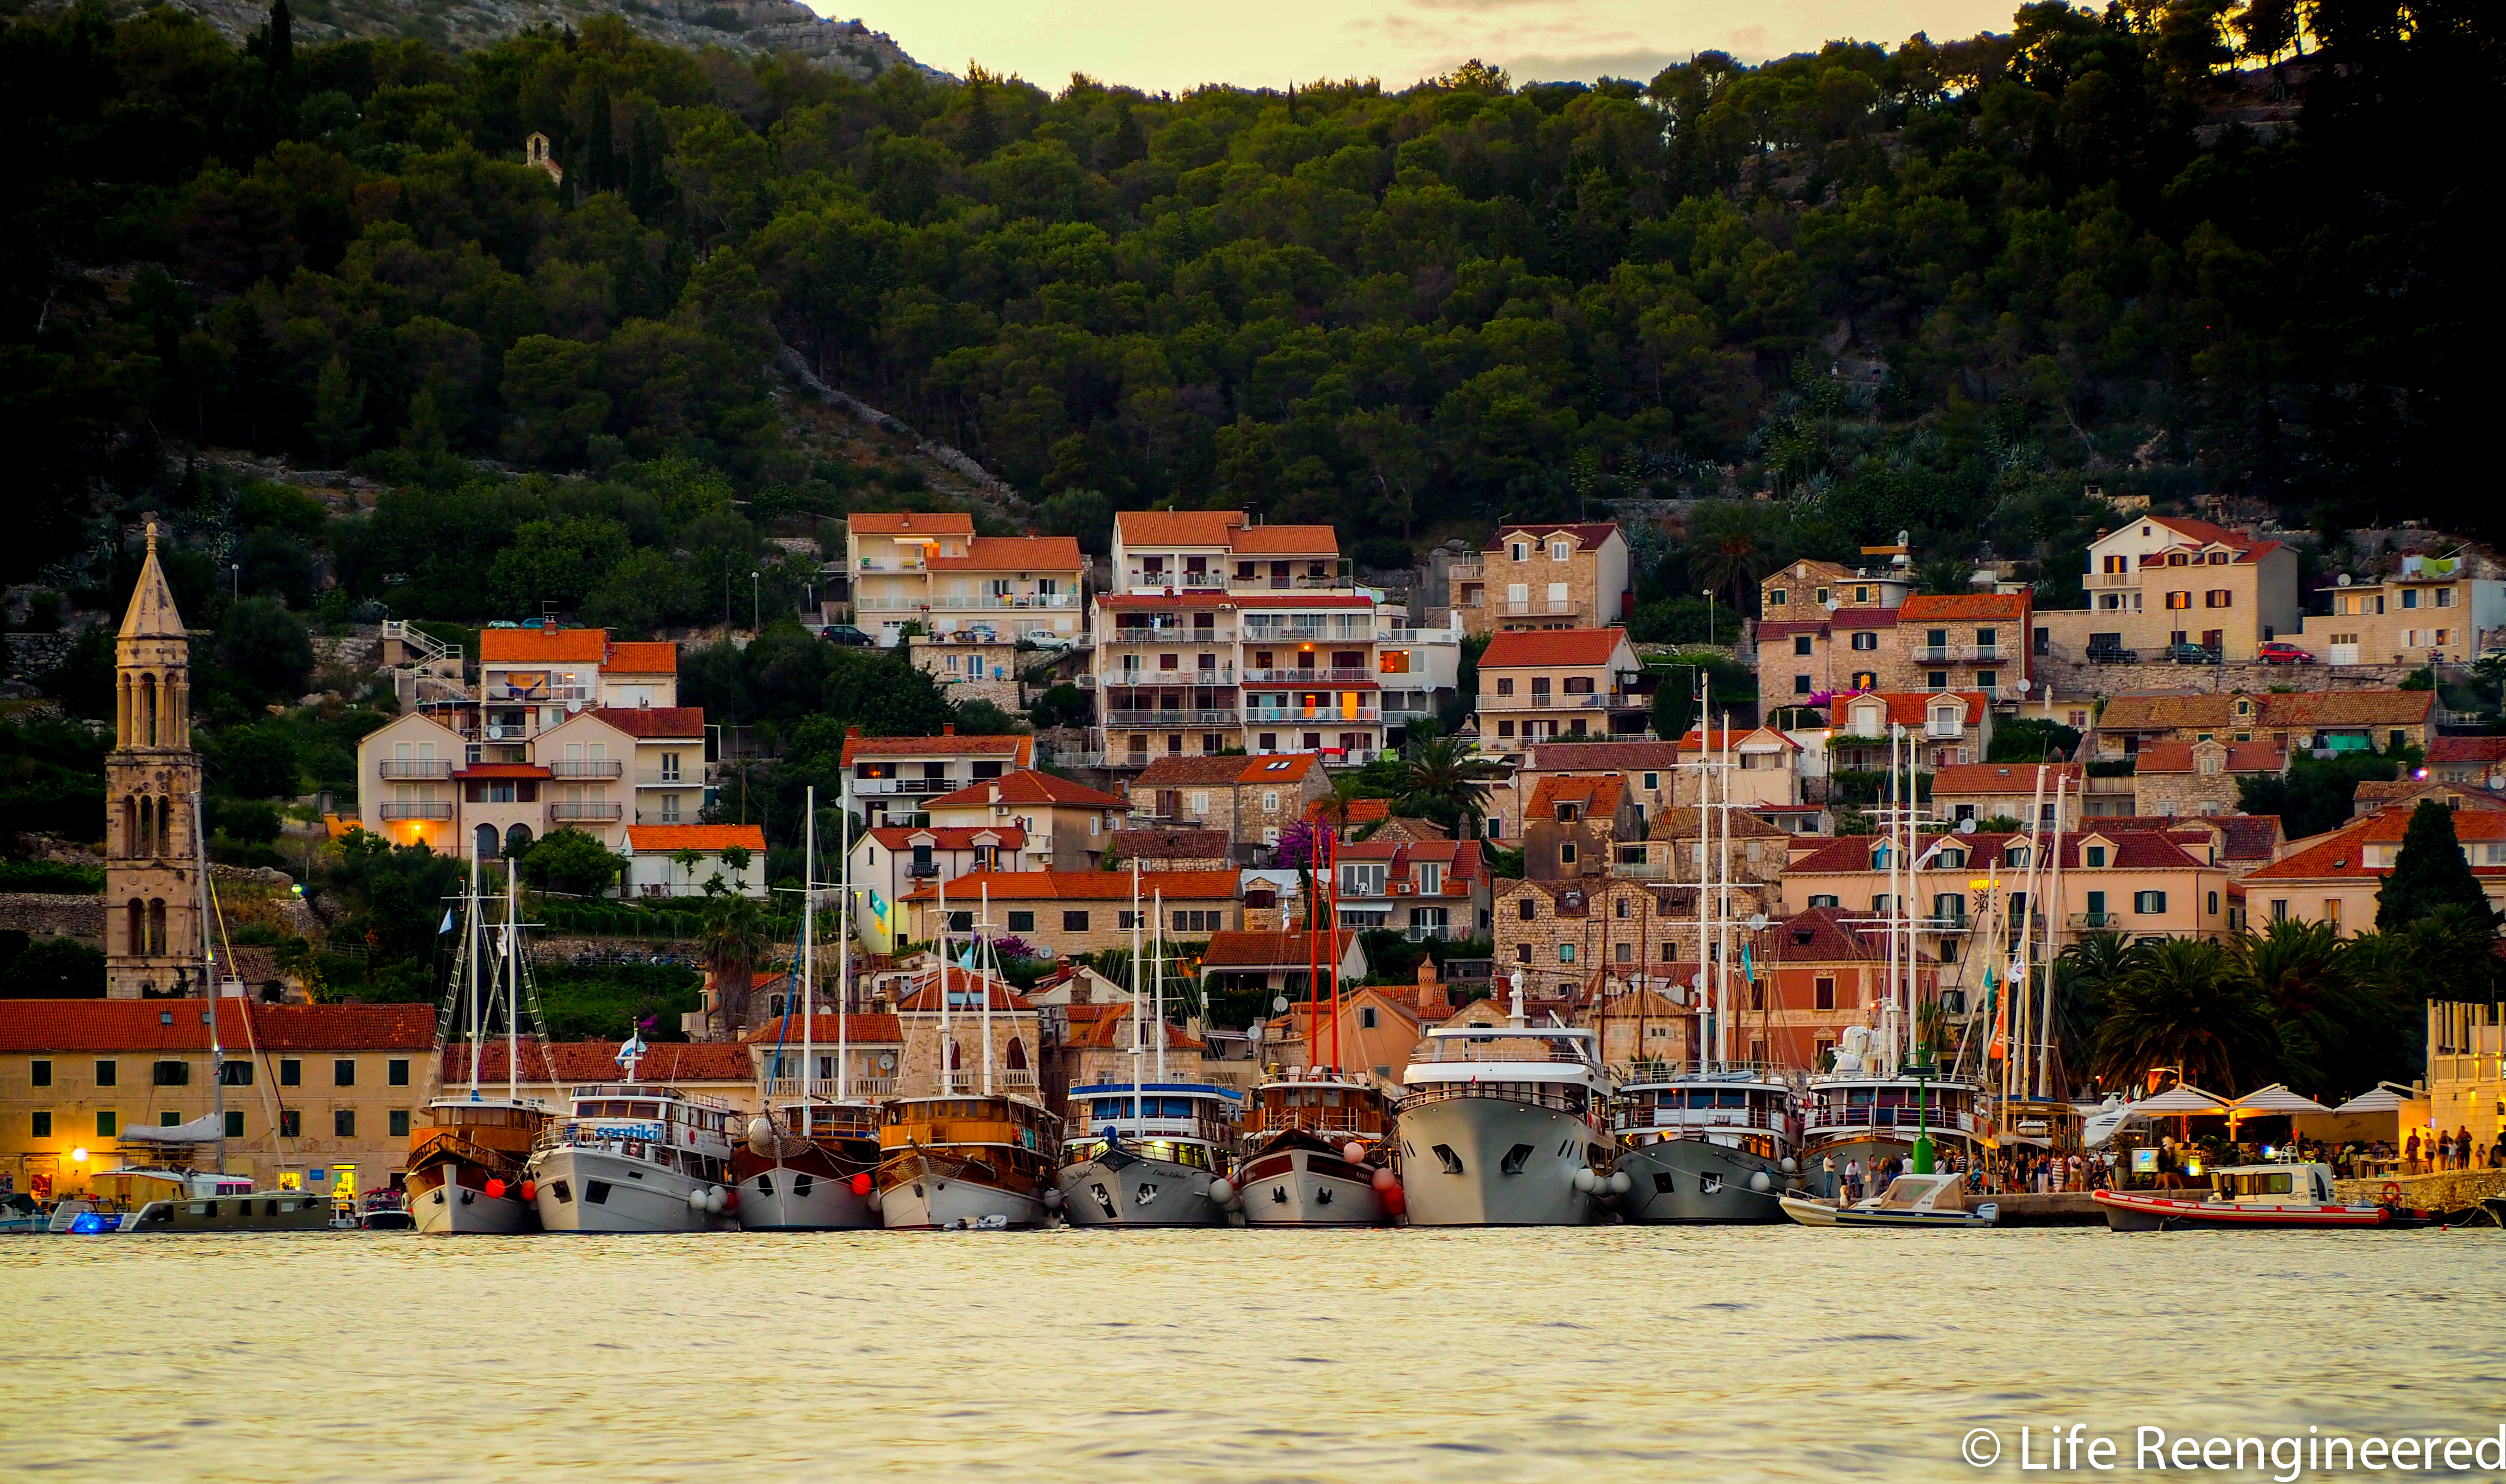 Old Town Hvar in the dying light. Cruise ships are tied together in front of the old town